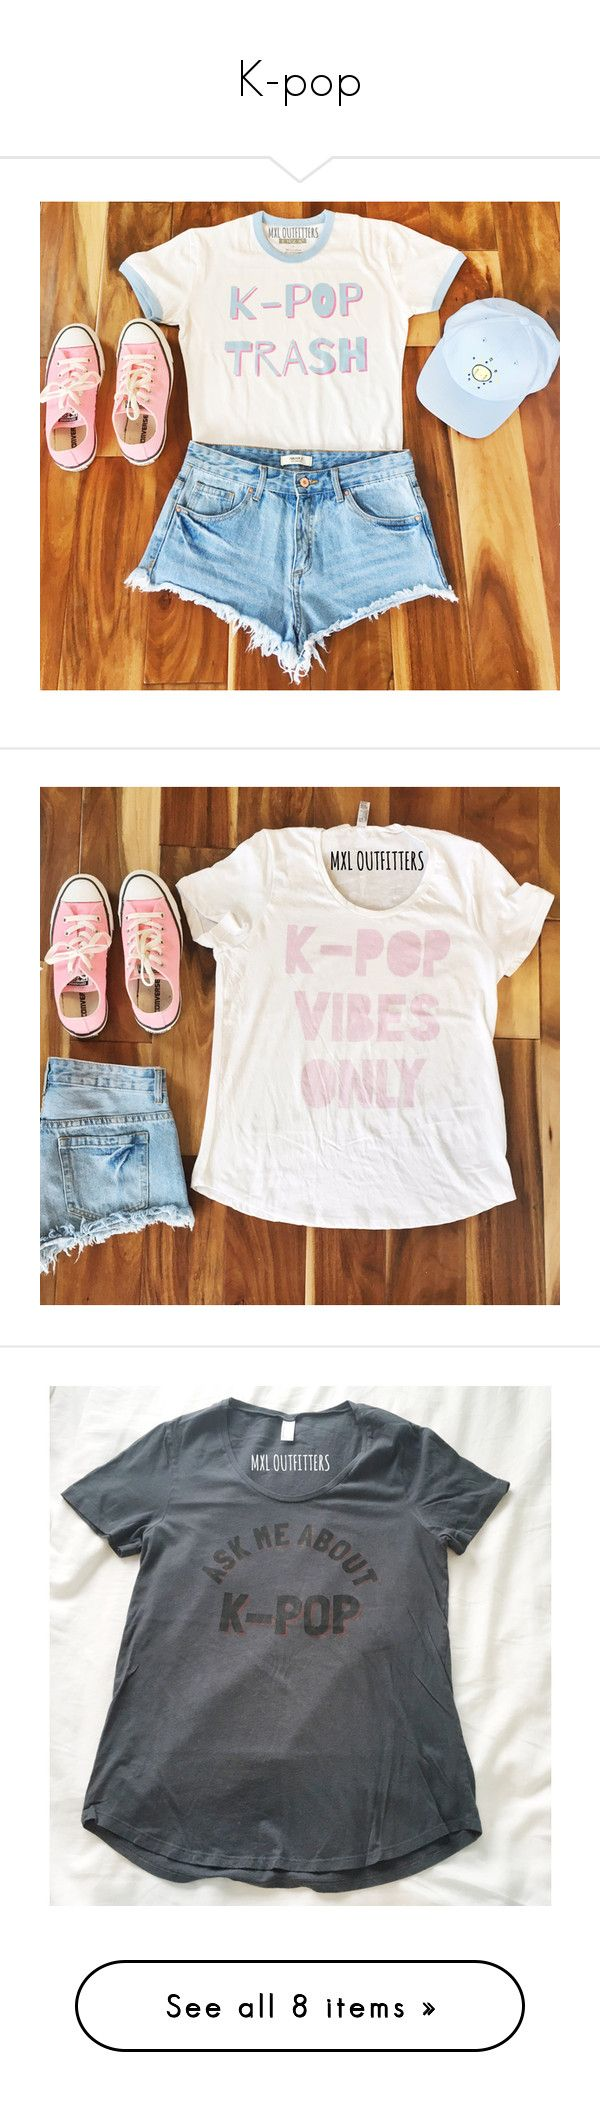 """K-pop"" by theviparmy ❤ liked on Polyvore featuring tops, t-shirts, outfits, kpop, silver, women's clothing, collared shirt, scoop neck tee, blue tee and blue collar shirt"